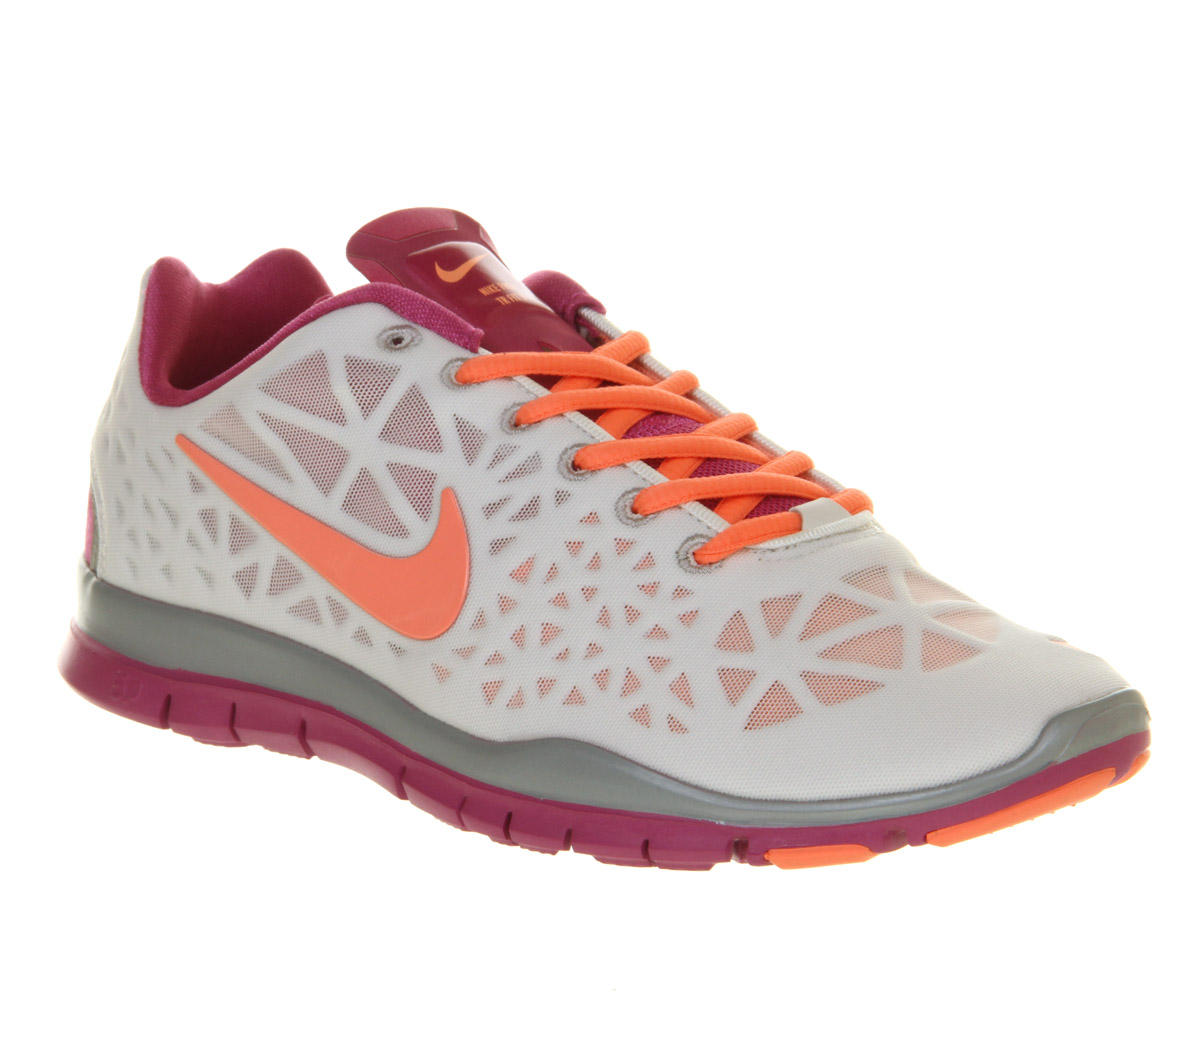 8c037fcbee43 Lyst - Nike Free Tr Fit 3 Summit White Atomic Pink in White